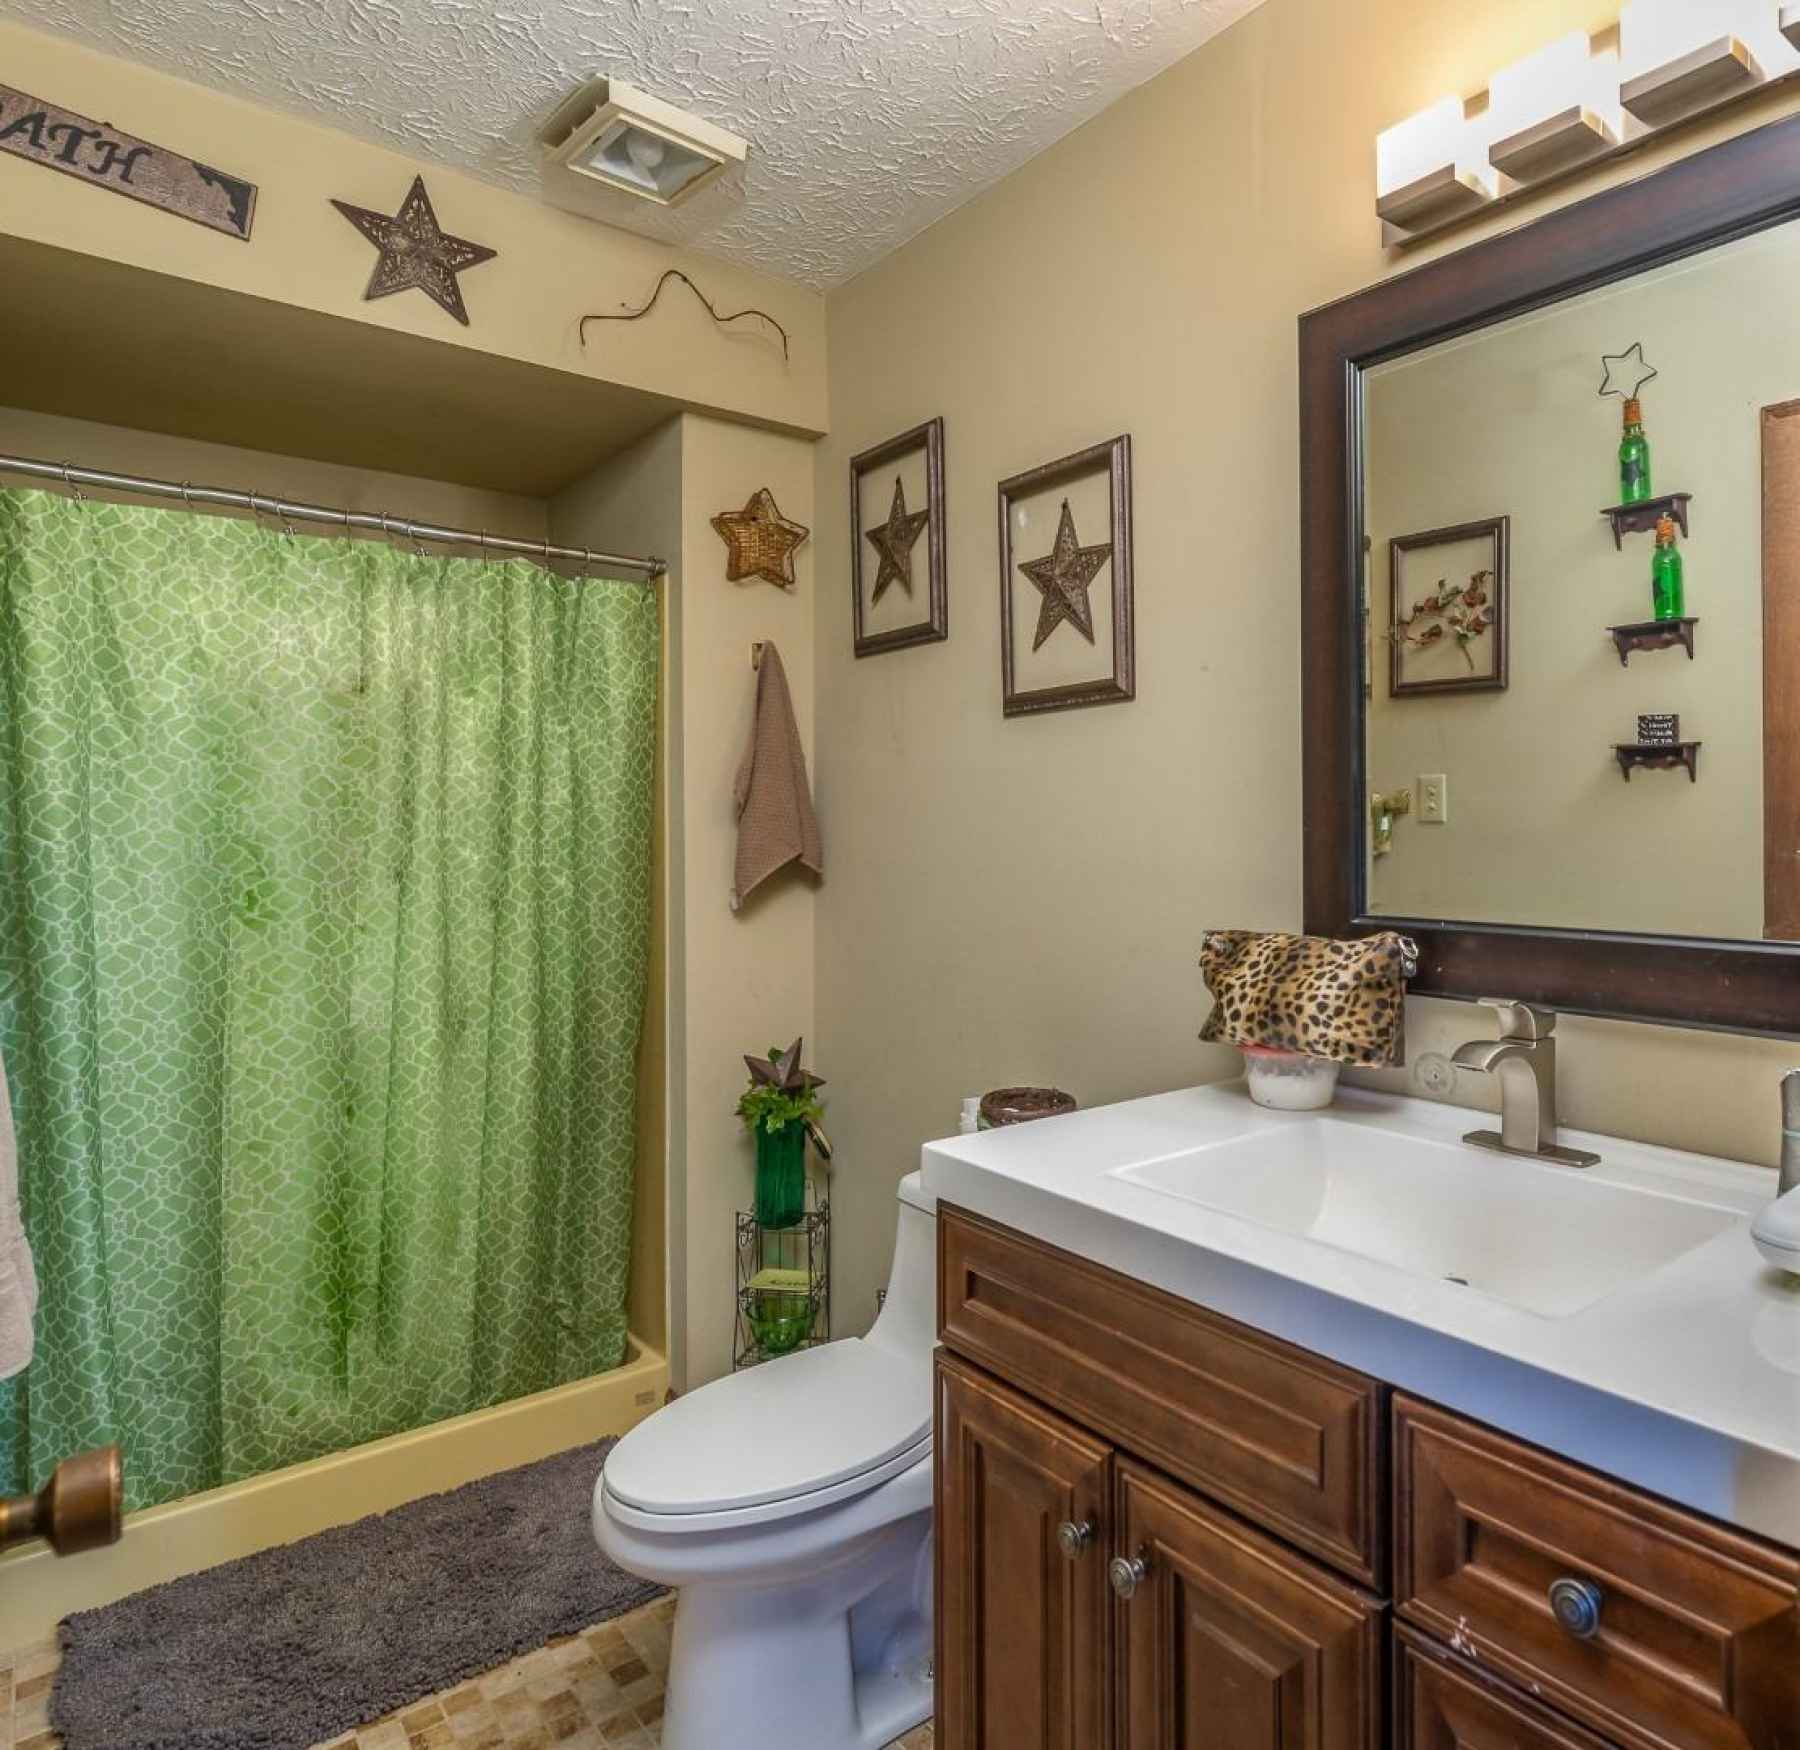 The second floor full bath has updated vanity, lights and fixtures as well as commode